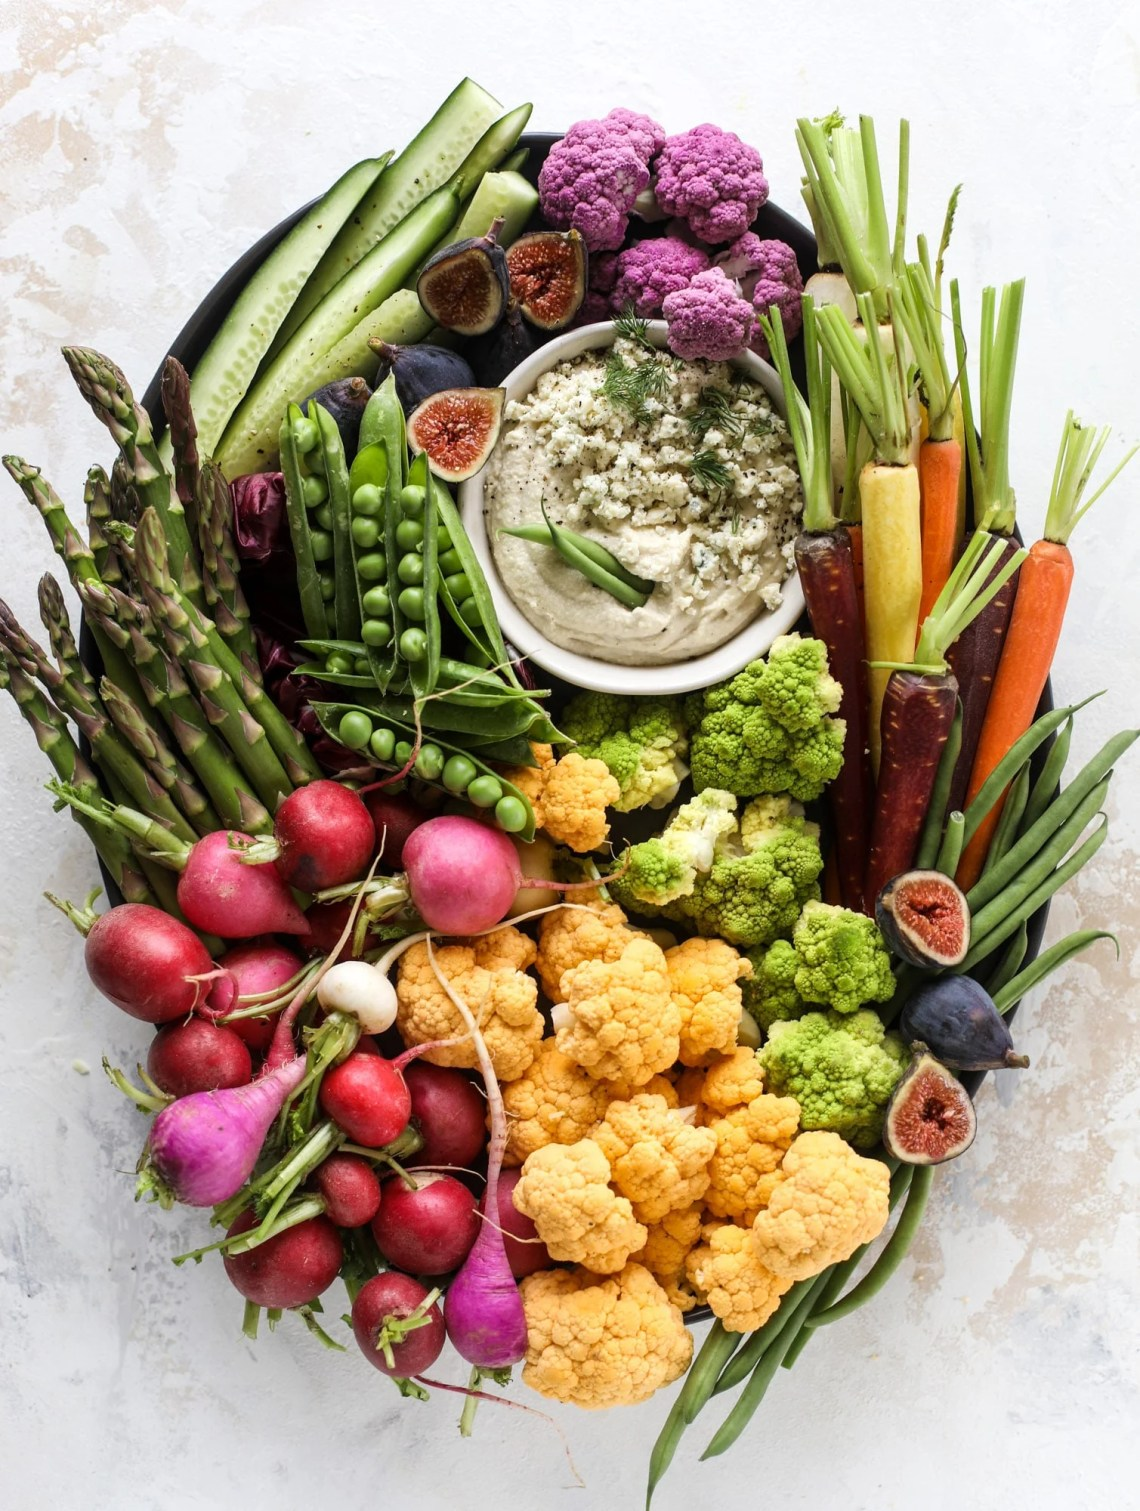 This creamy cashew blue cheese dip is a fantastic snack or appetizer! Grab some veggies, crackers and chips and get your dip on. I howsweeteats.com #bluecheese #dip